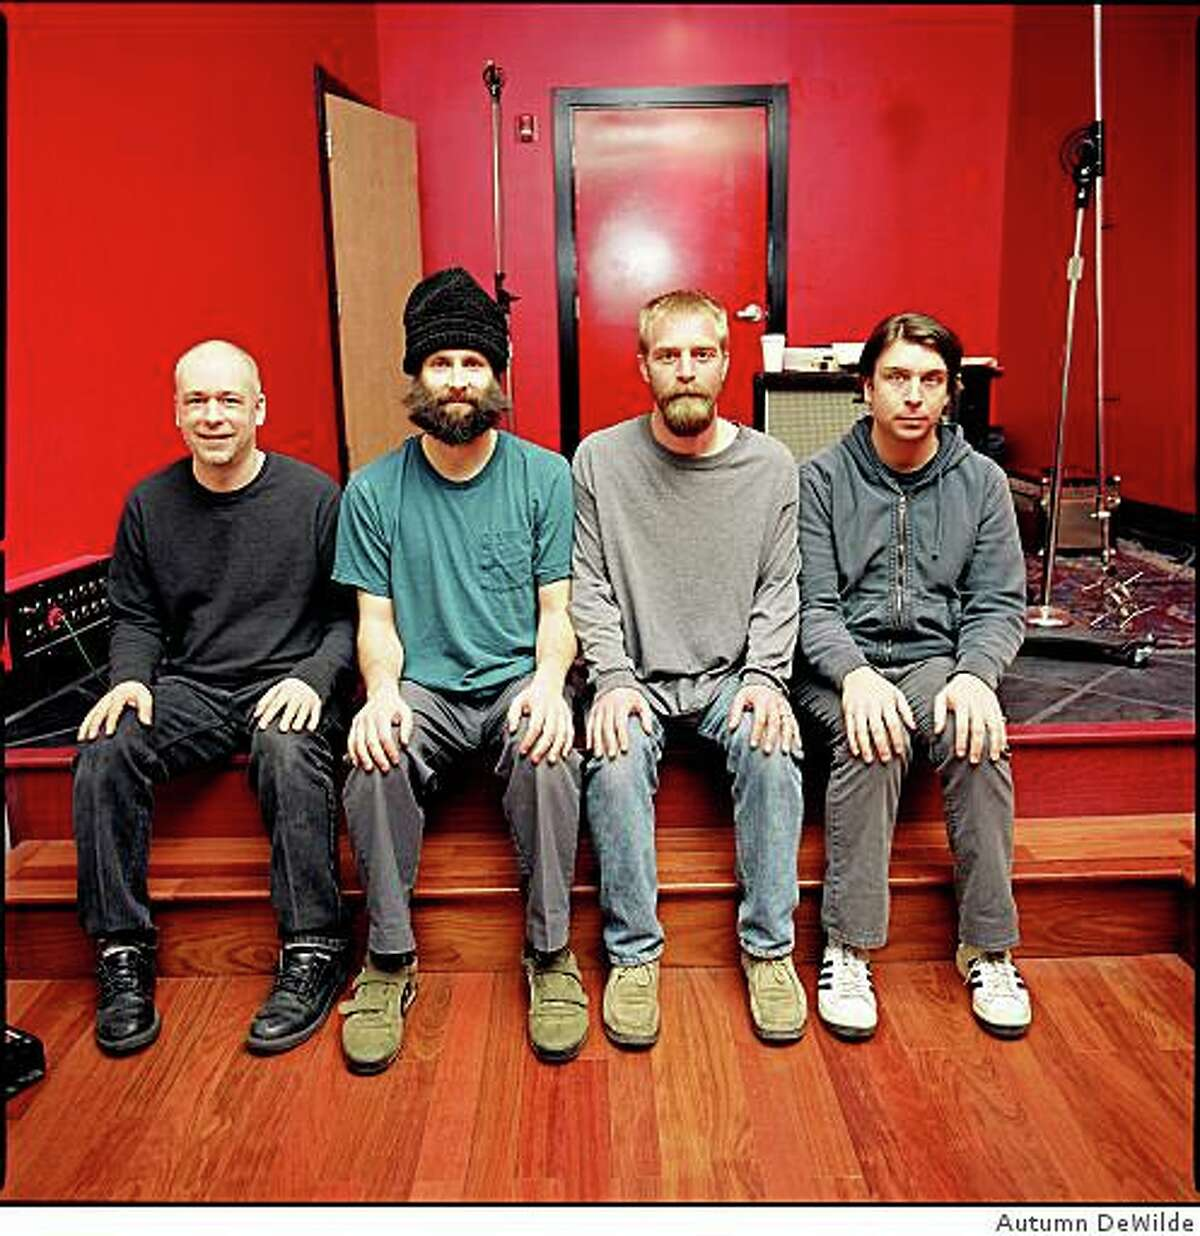 The band Built to Spill